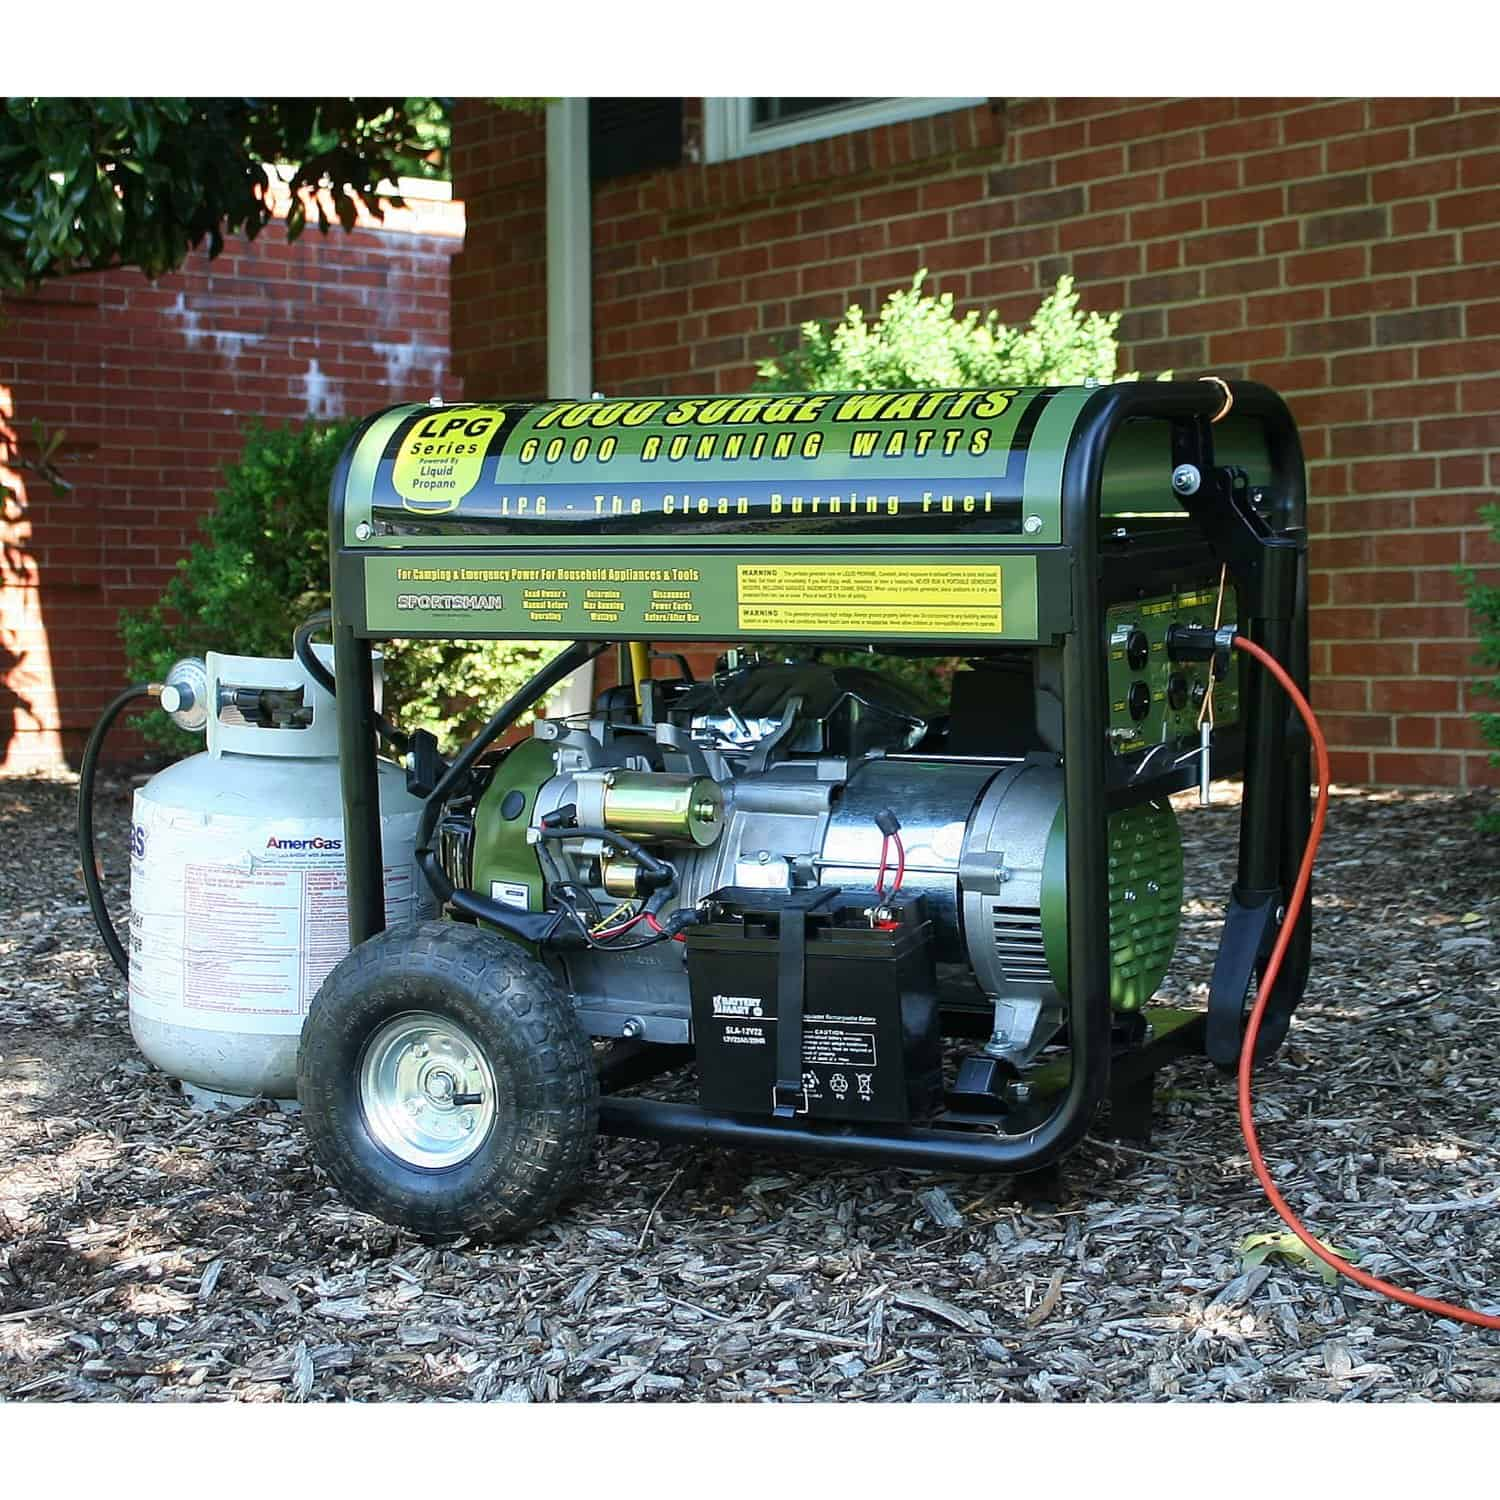 The Best Propane Gas Generator Reviews My Gen Set